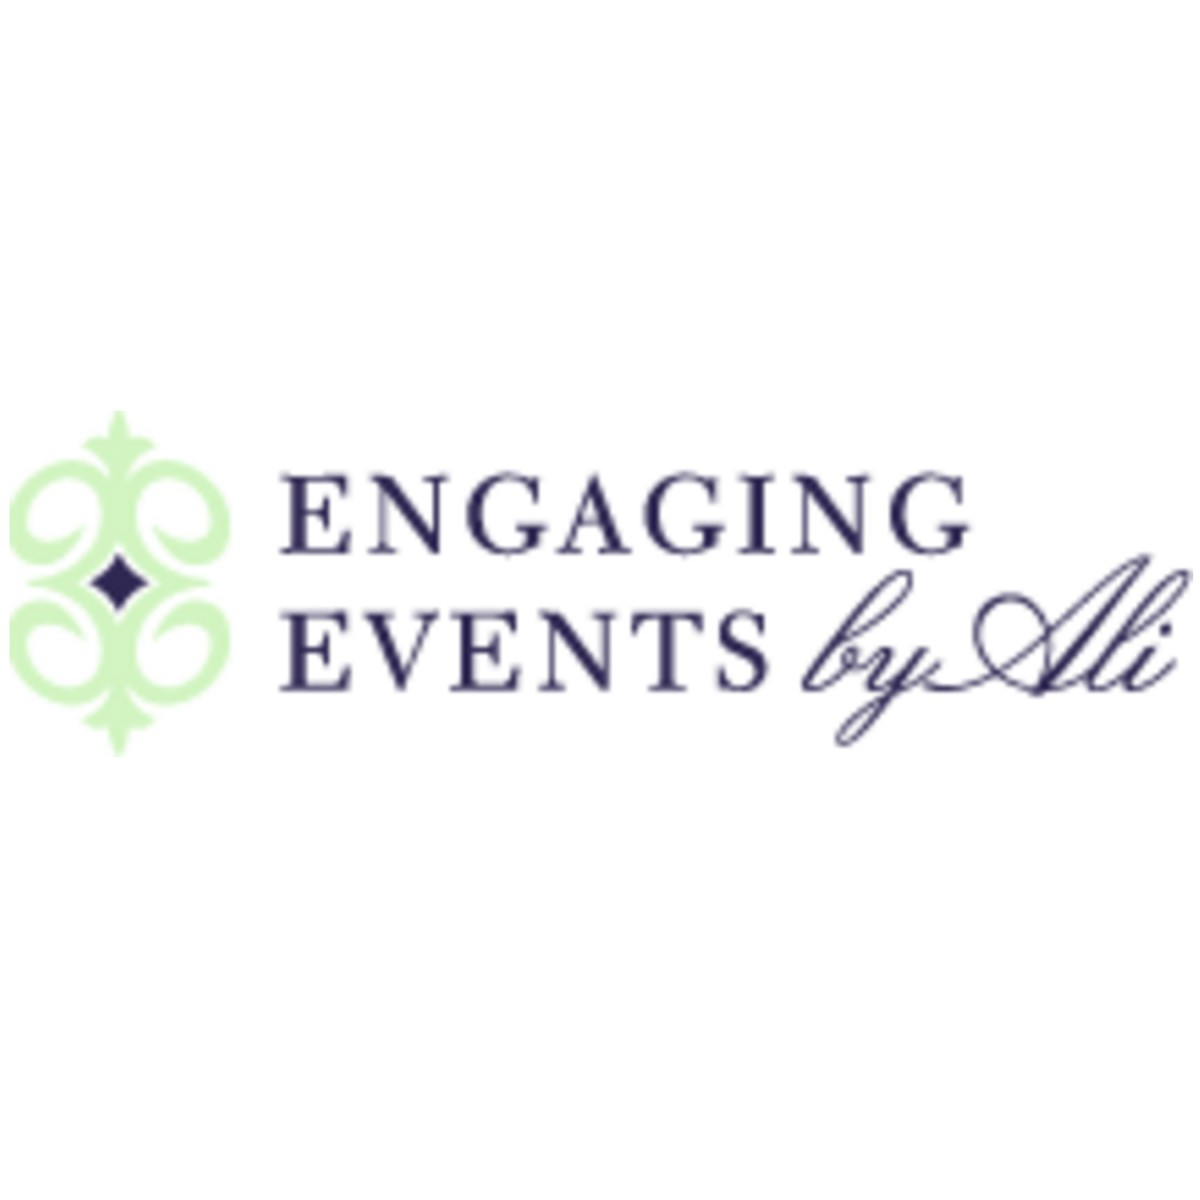 Engaging Events By Ali logo